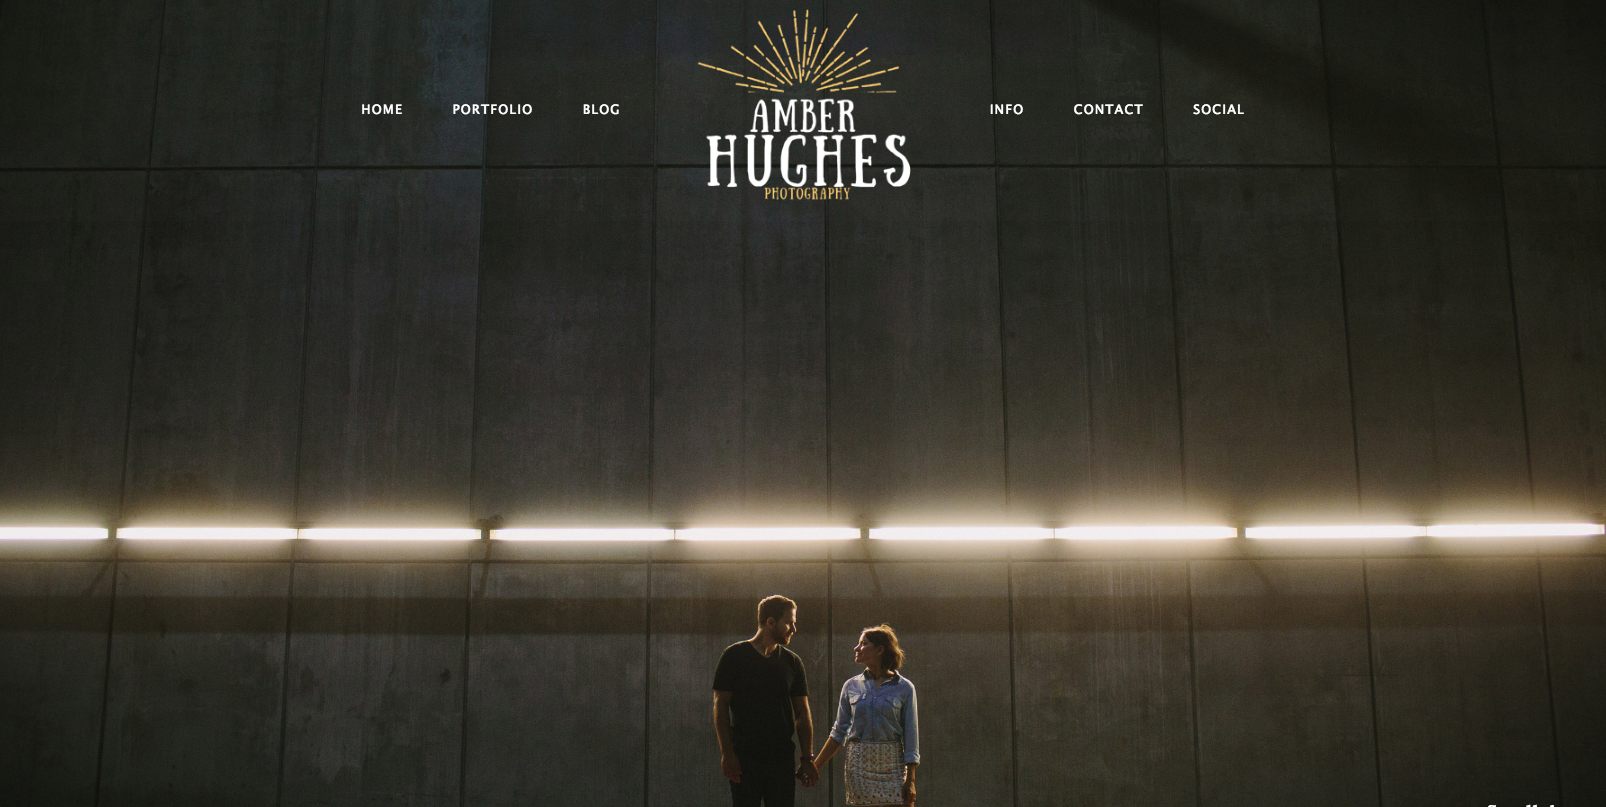 Amber Hughes Photography New Website